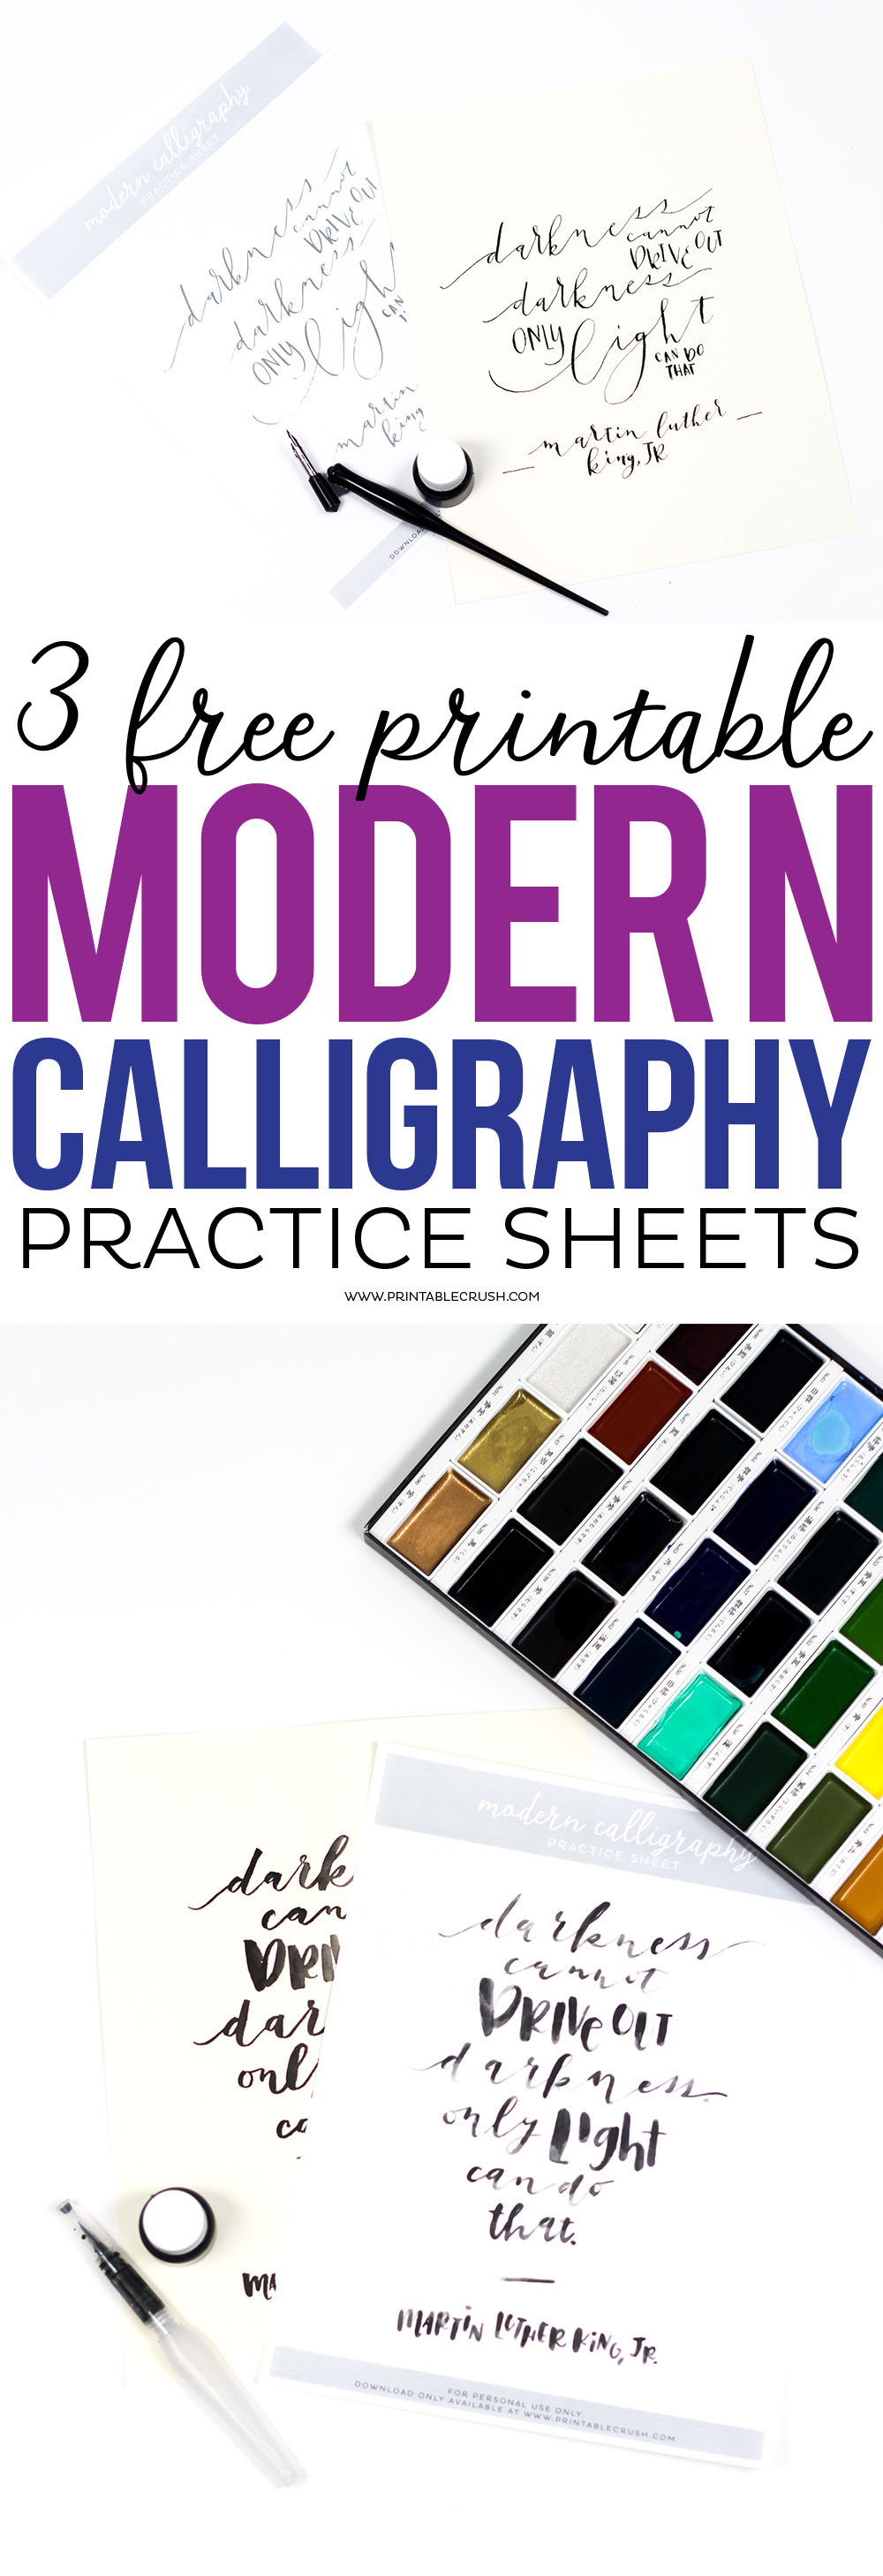 Free printable modern calligraphy practice sheets